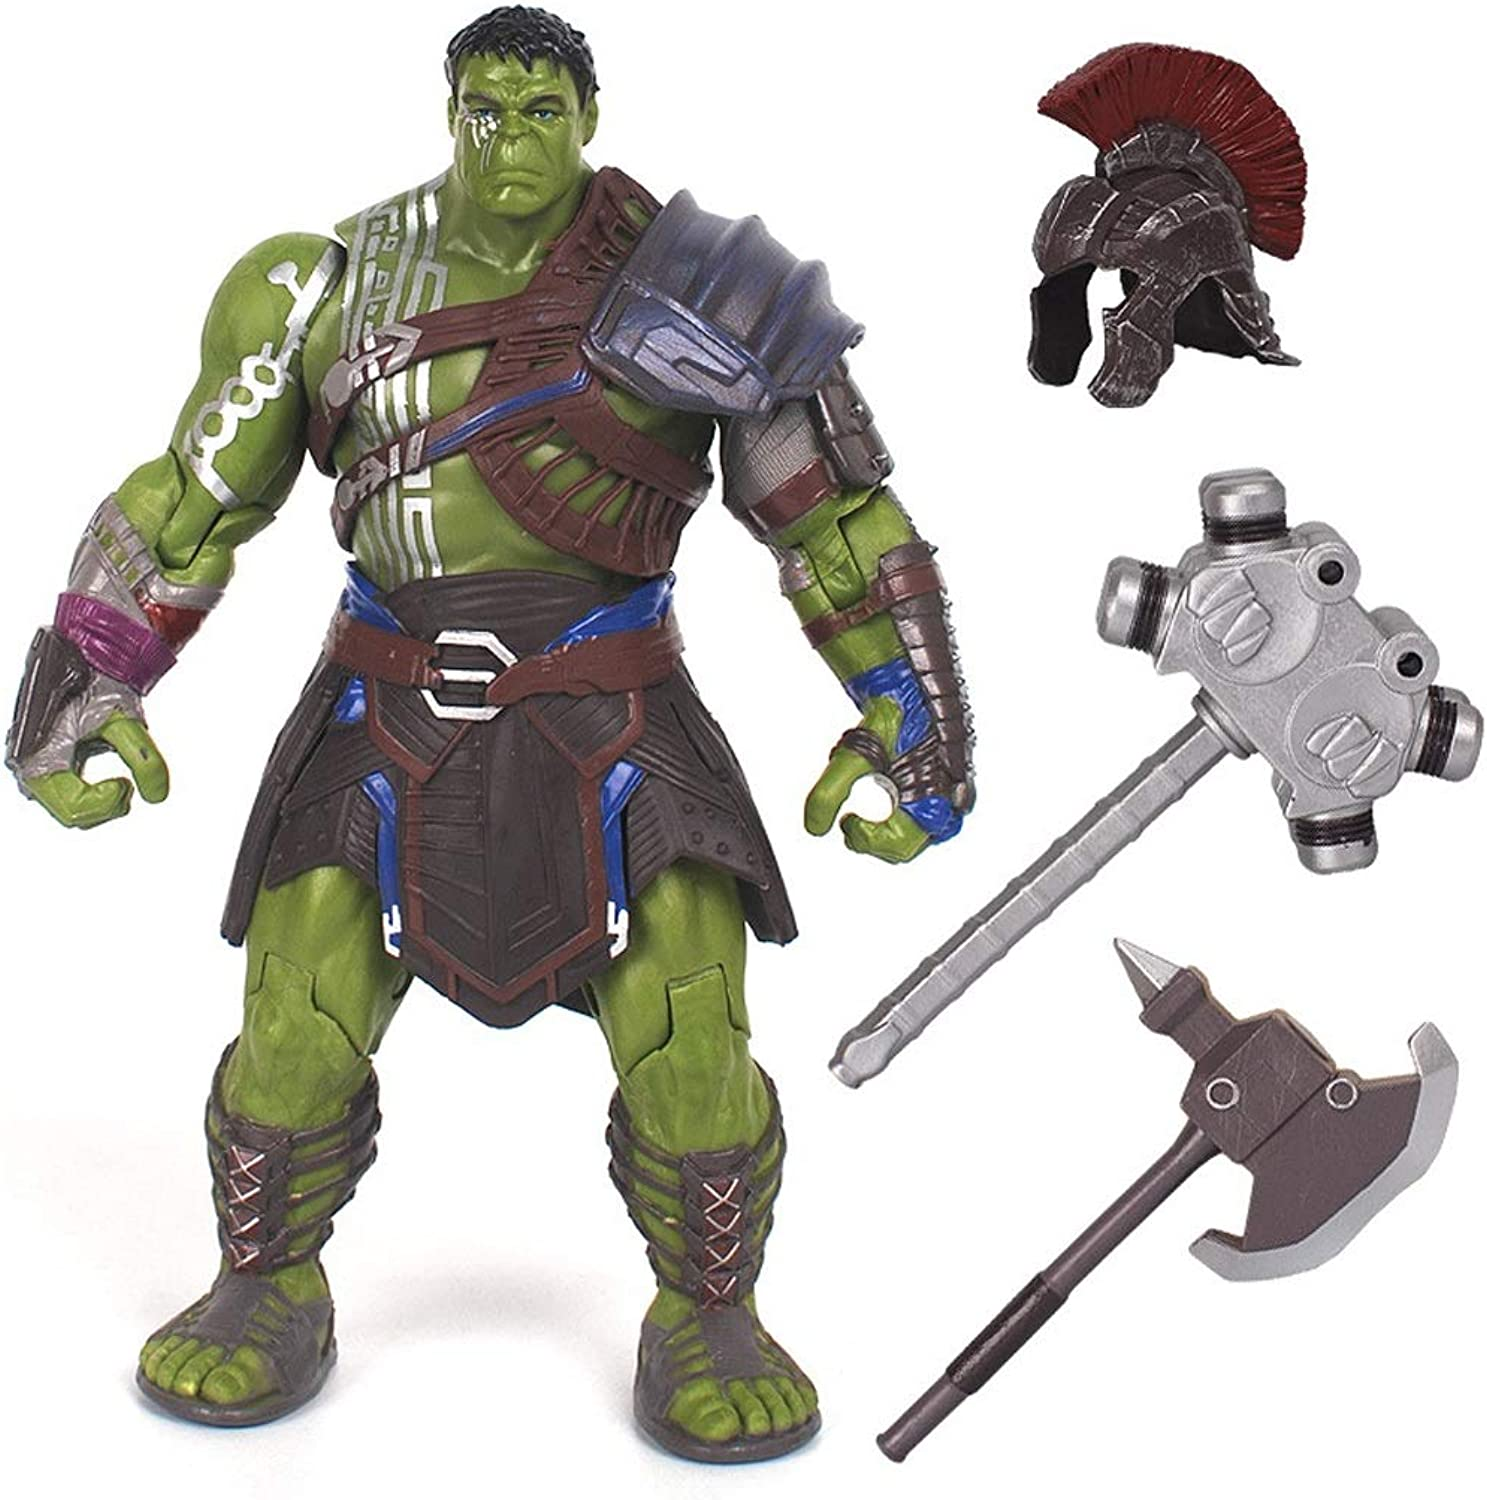 Superhero Gladiator Incredible Hulk Action Figure  Equipped with Helmet, Hammer, Axe